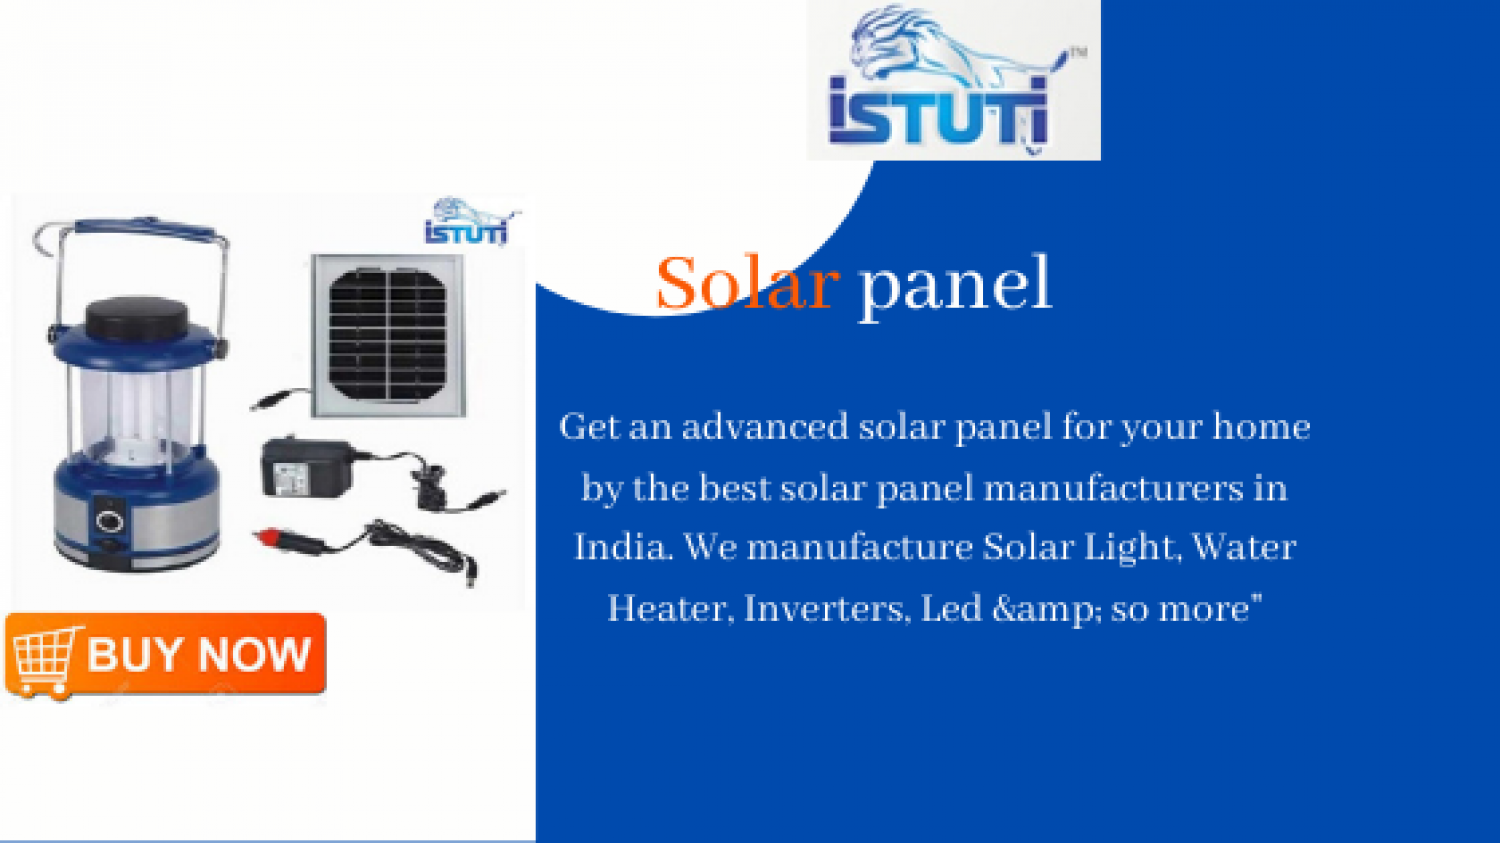 Solar Panel Manufacturers | Solar Panel For Home | Istuti Infographic